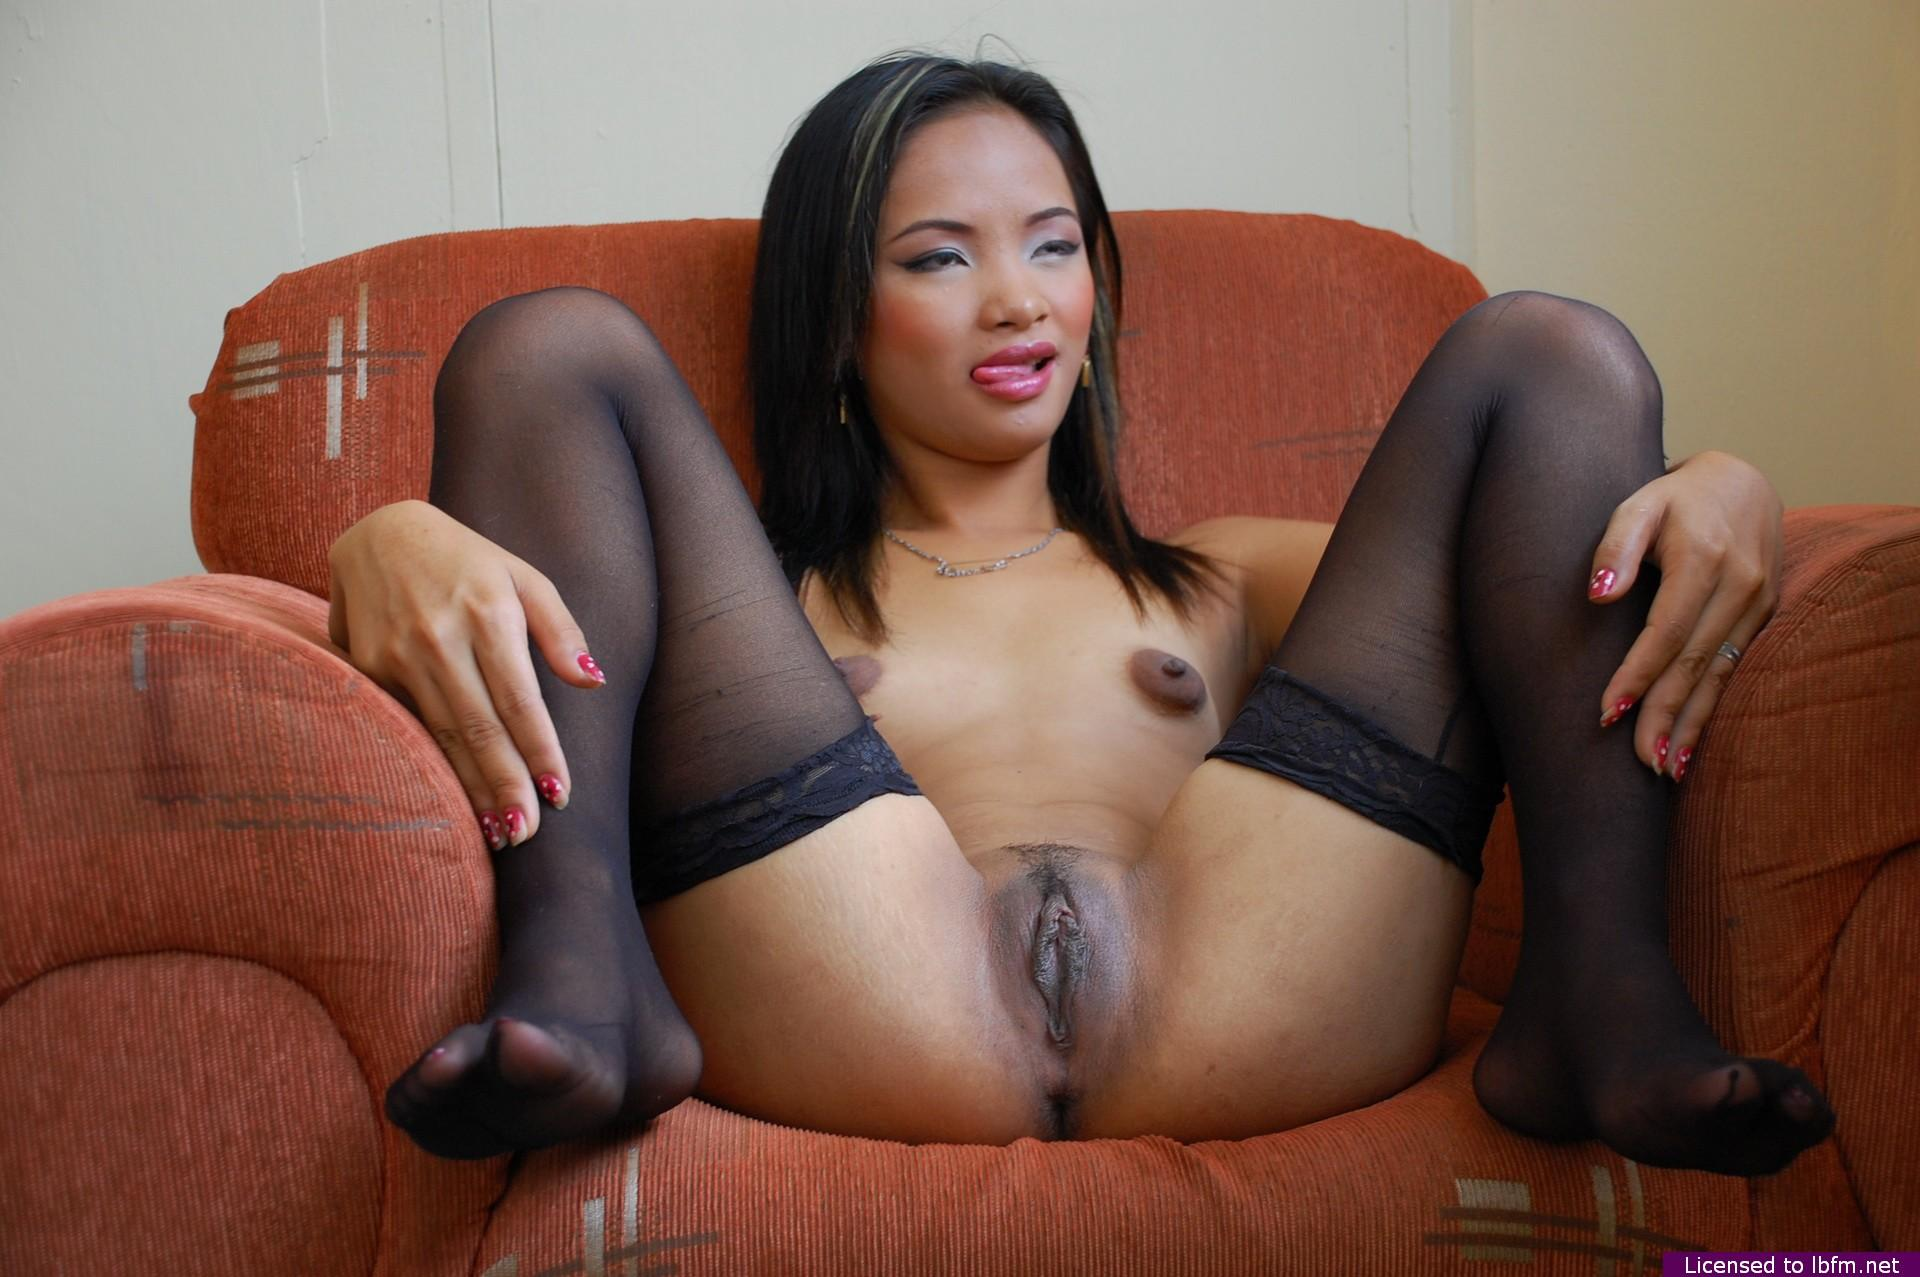 Sorry, asian puffy tits excited